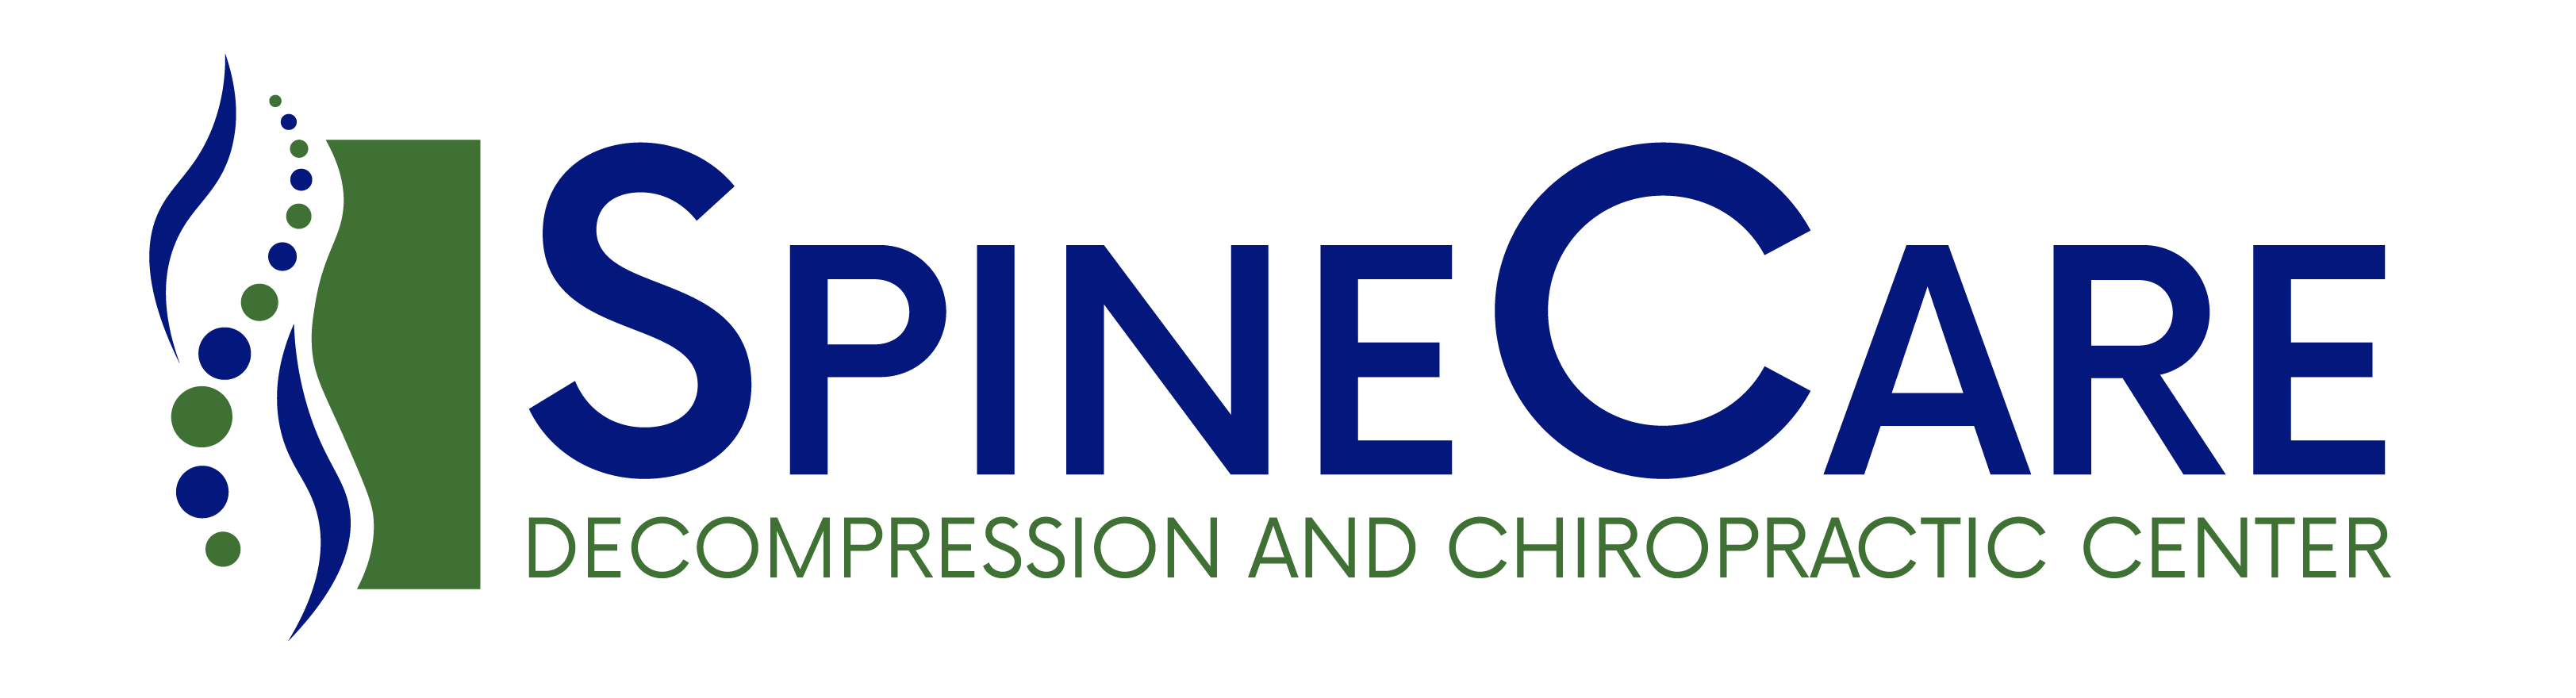 SpineCare Decompression and Chiropractic Center | St. Joseph, MI Chiropractor